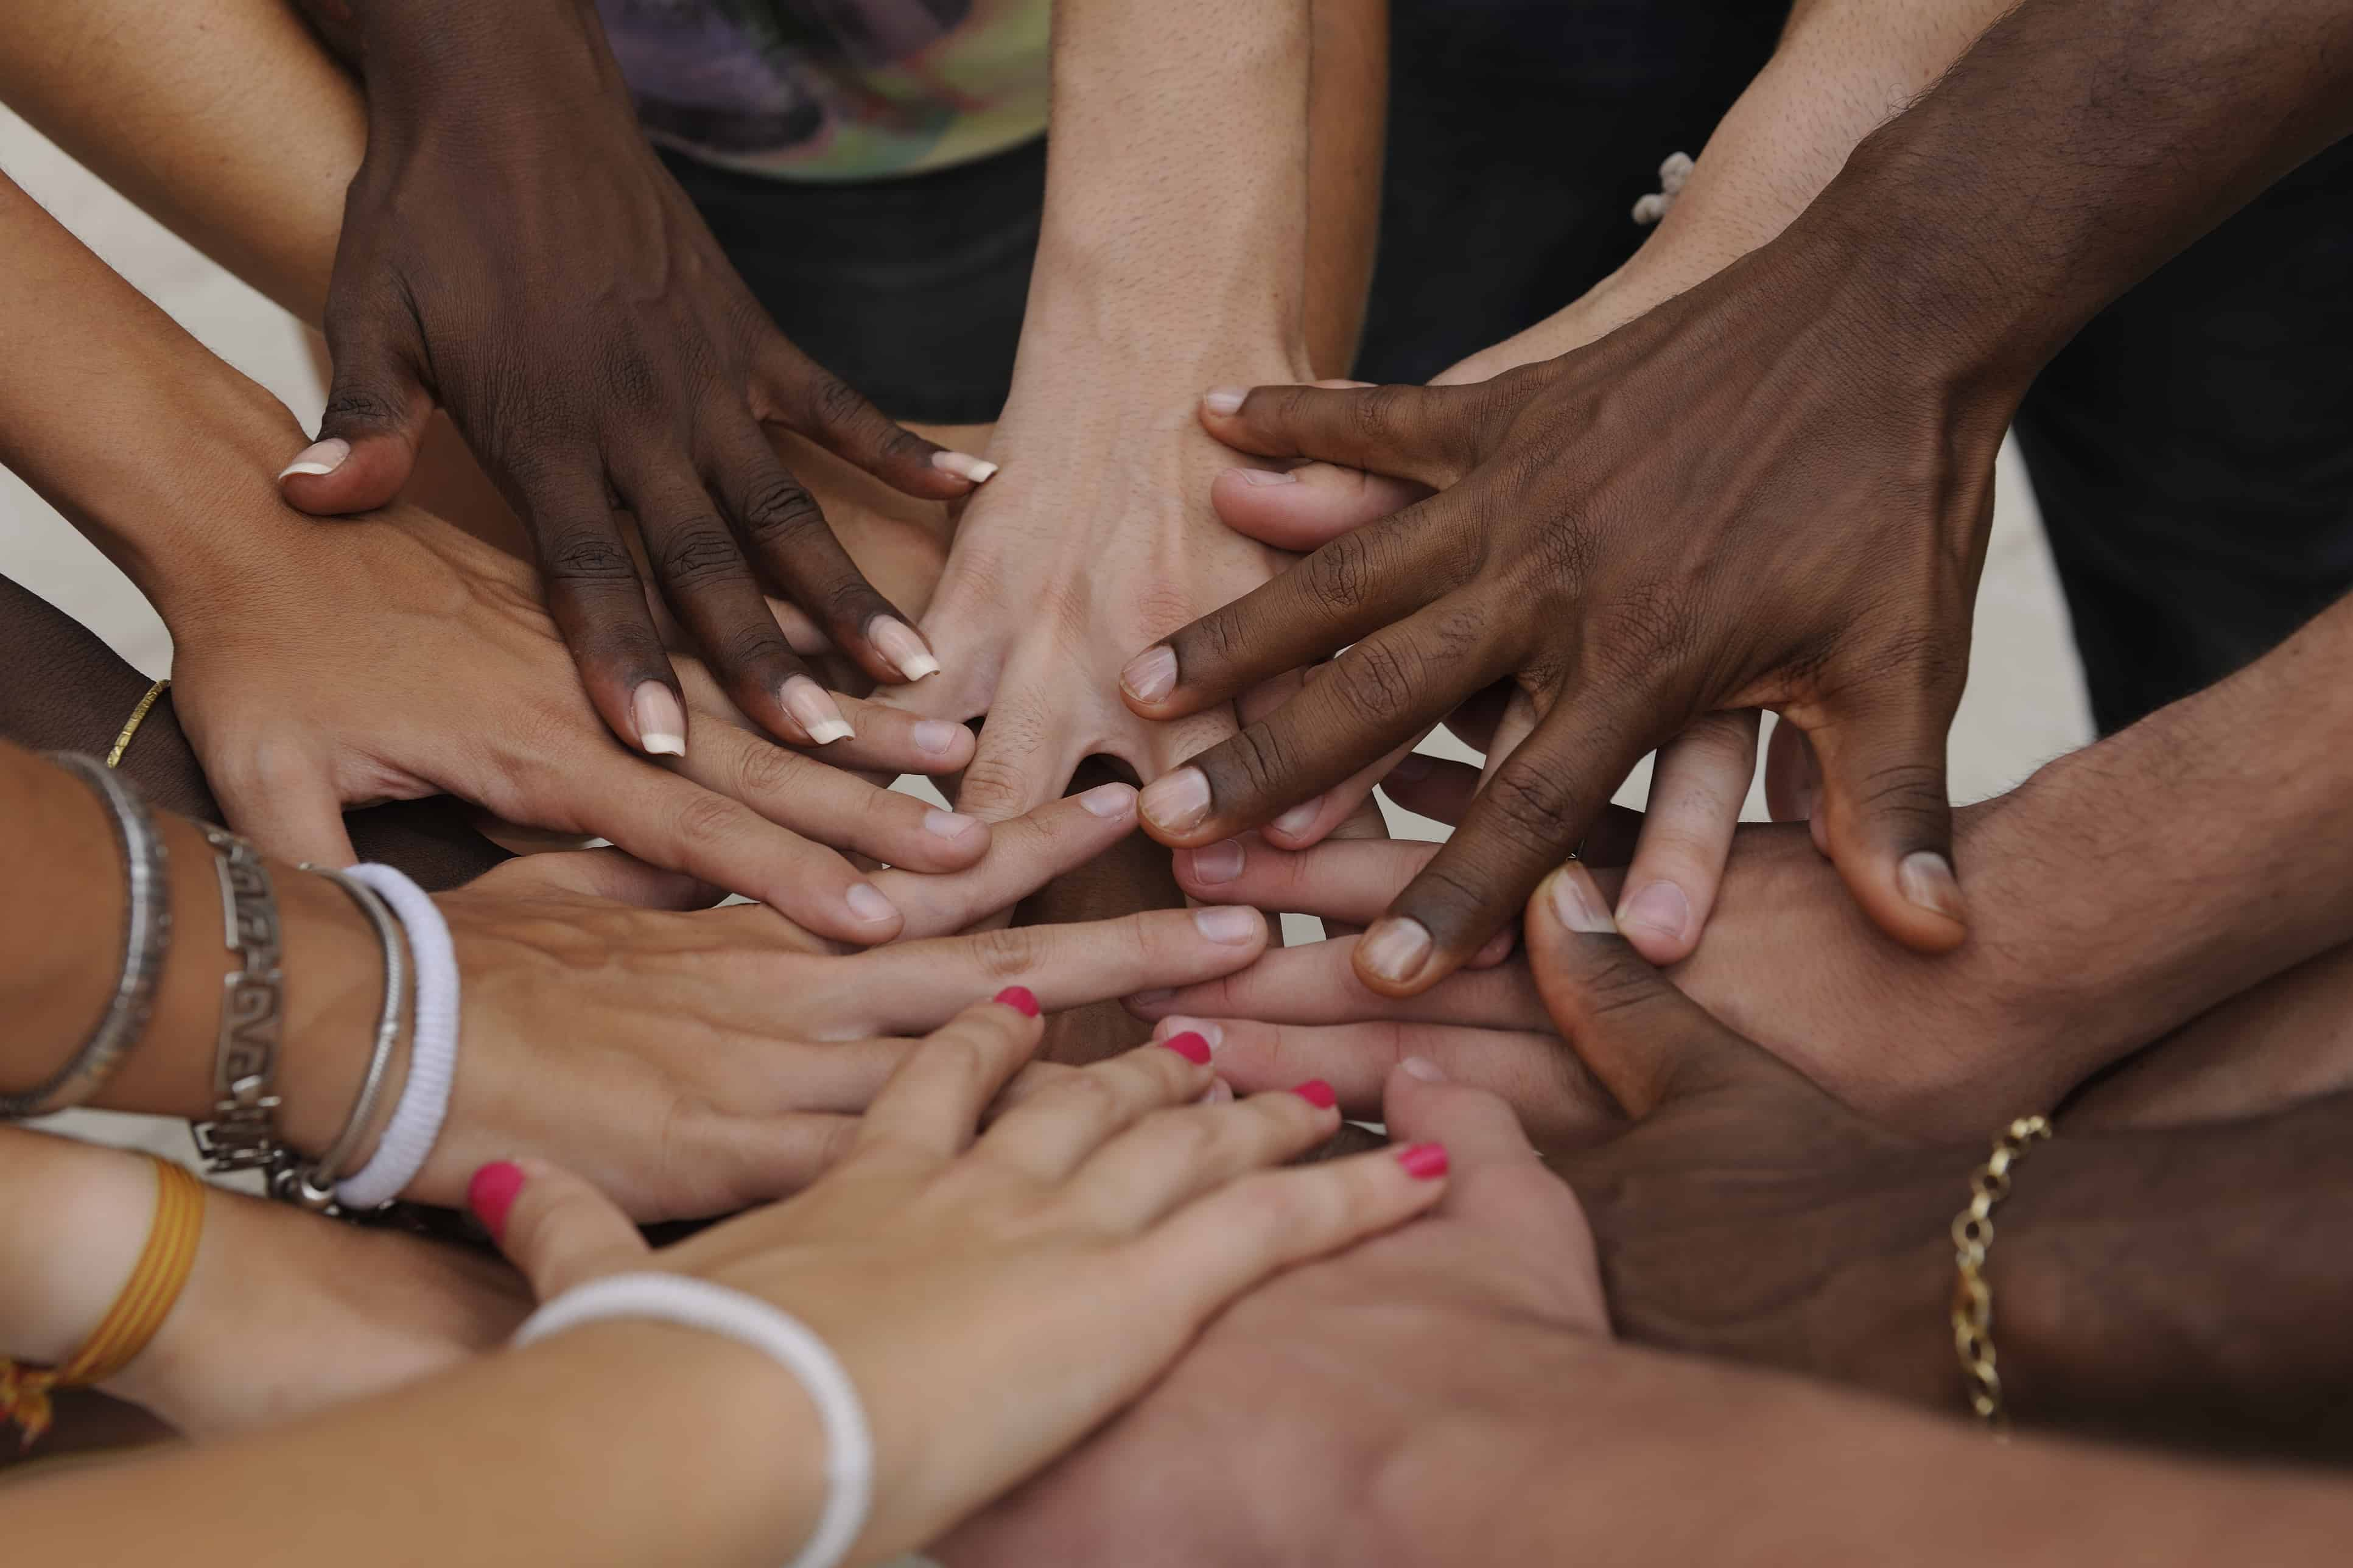 Diverse human hands showing unity